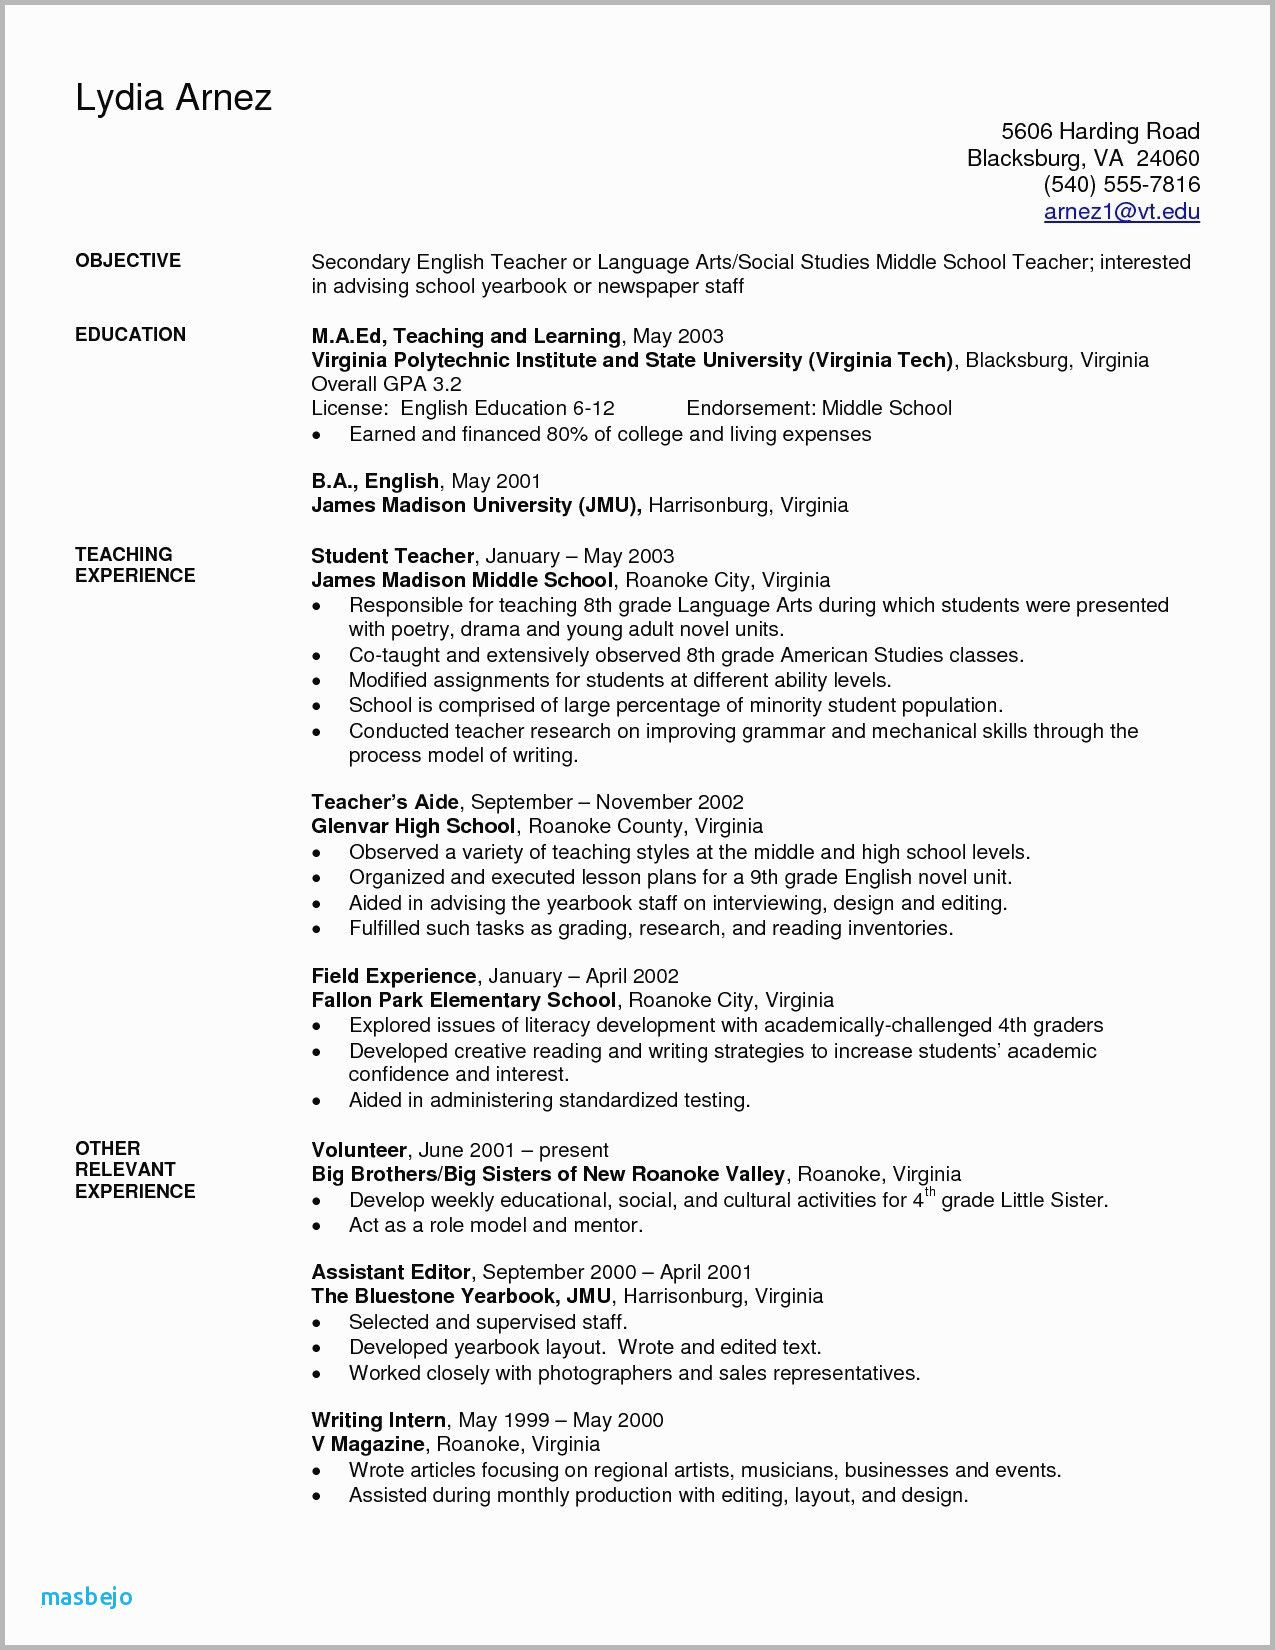 77 Luxury Images Of Government Employee Resume Examples